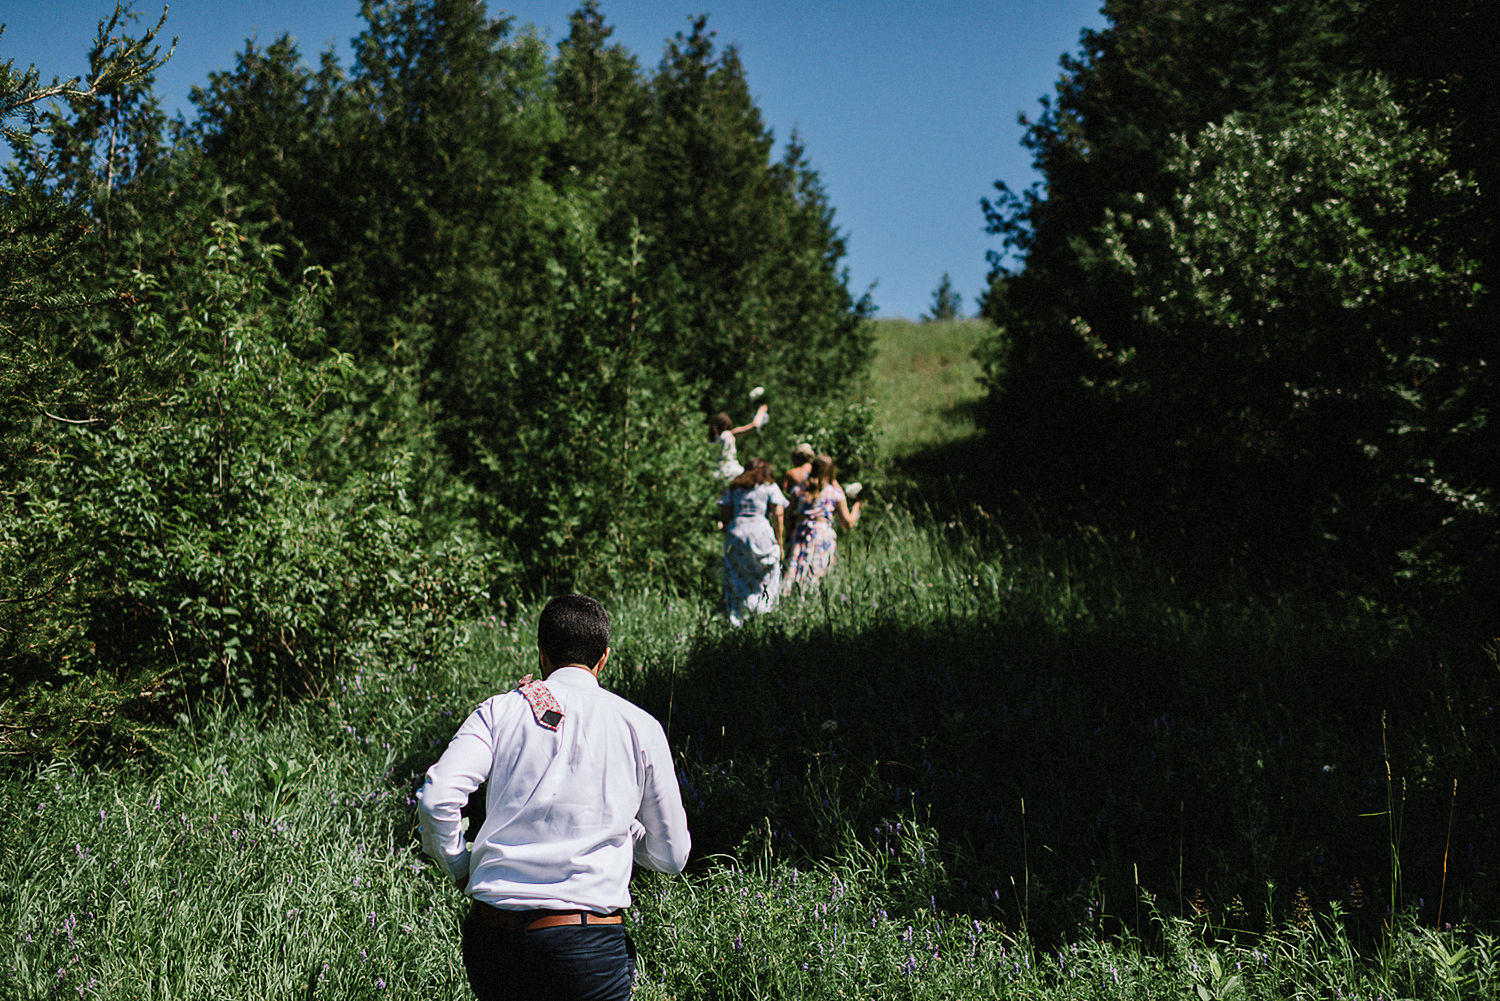 Outdoor-CeremonyIdeas-Bride-and-Groom-Exit-Toronto-Vintage-Bride-Outdoor-Forest-Wedding-Venue-High-Park-Downtown-Toronto_Candid-Editorial-Documentary-Wedding-Photographers-Sweet-Candid-Moment-Between-Groom--and-Bride-hugging-guests.jpg